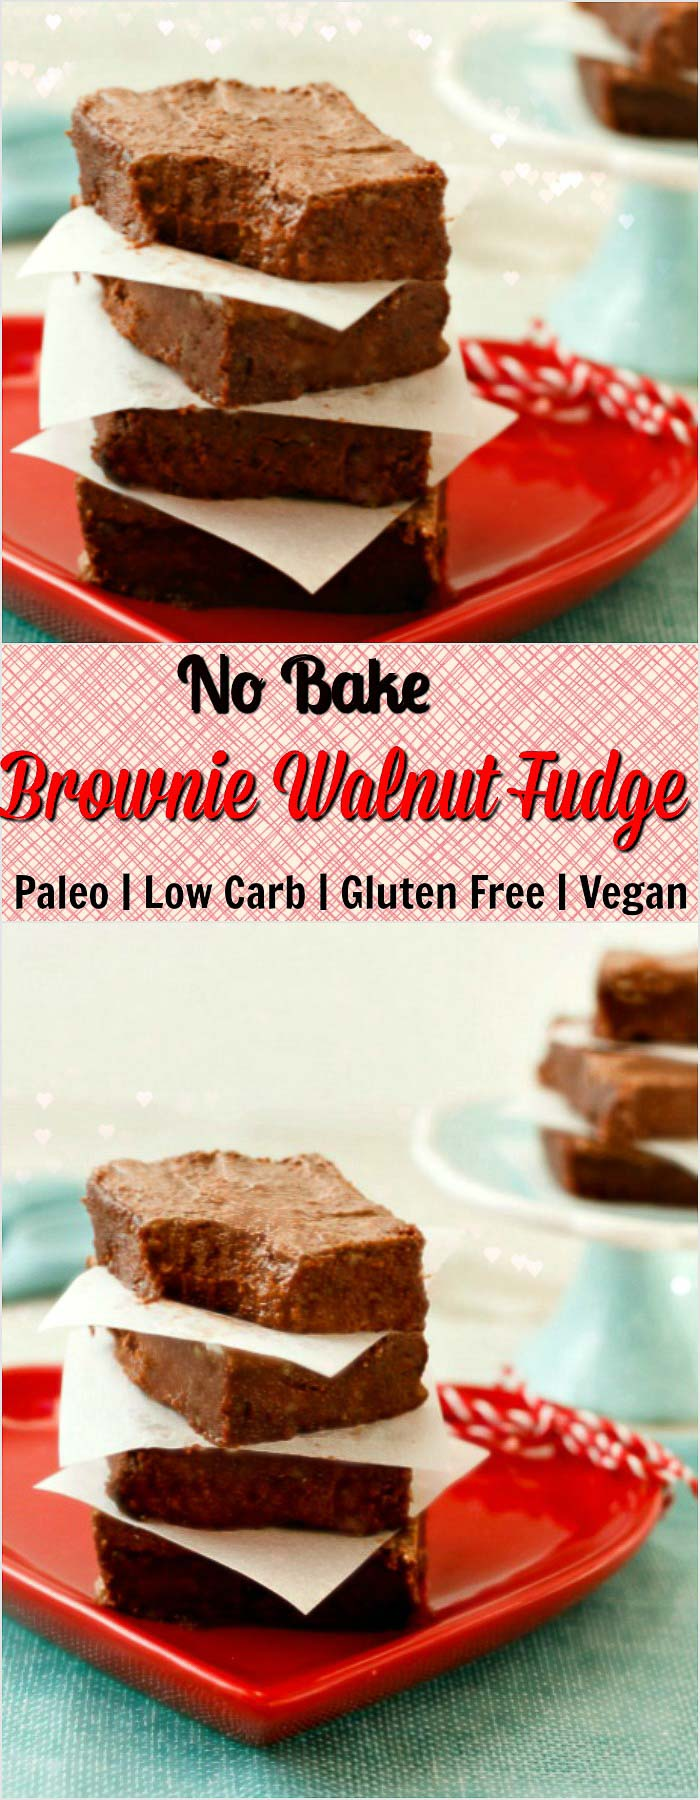 No Bake Frosted Brownie Walnut Fudge- paleo, low carb and vegan.